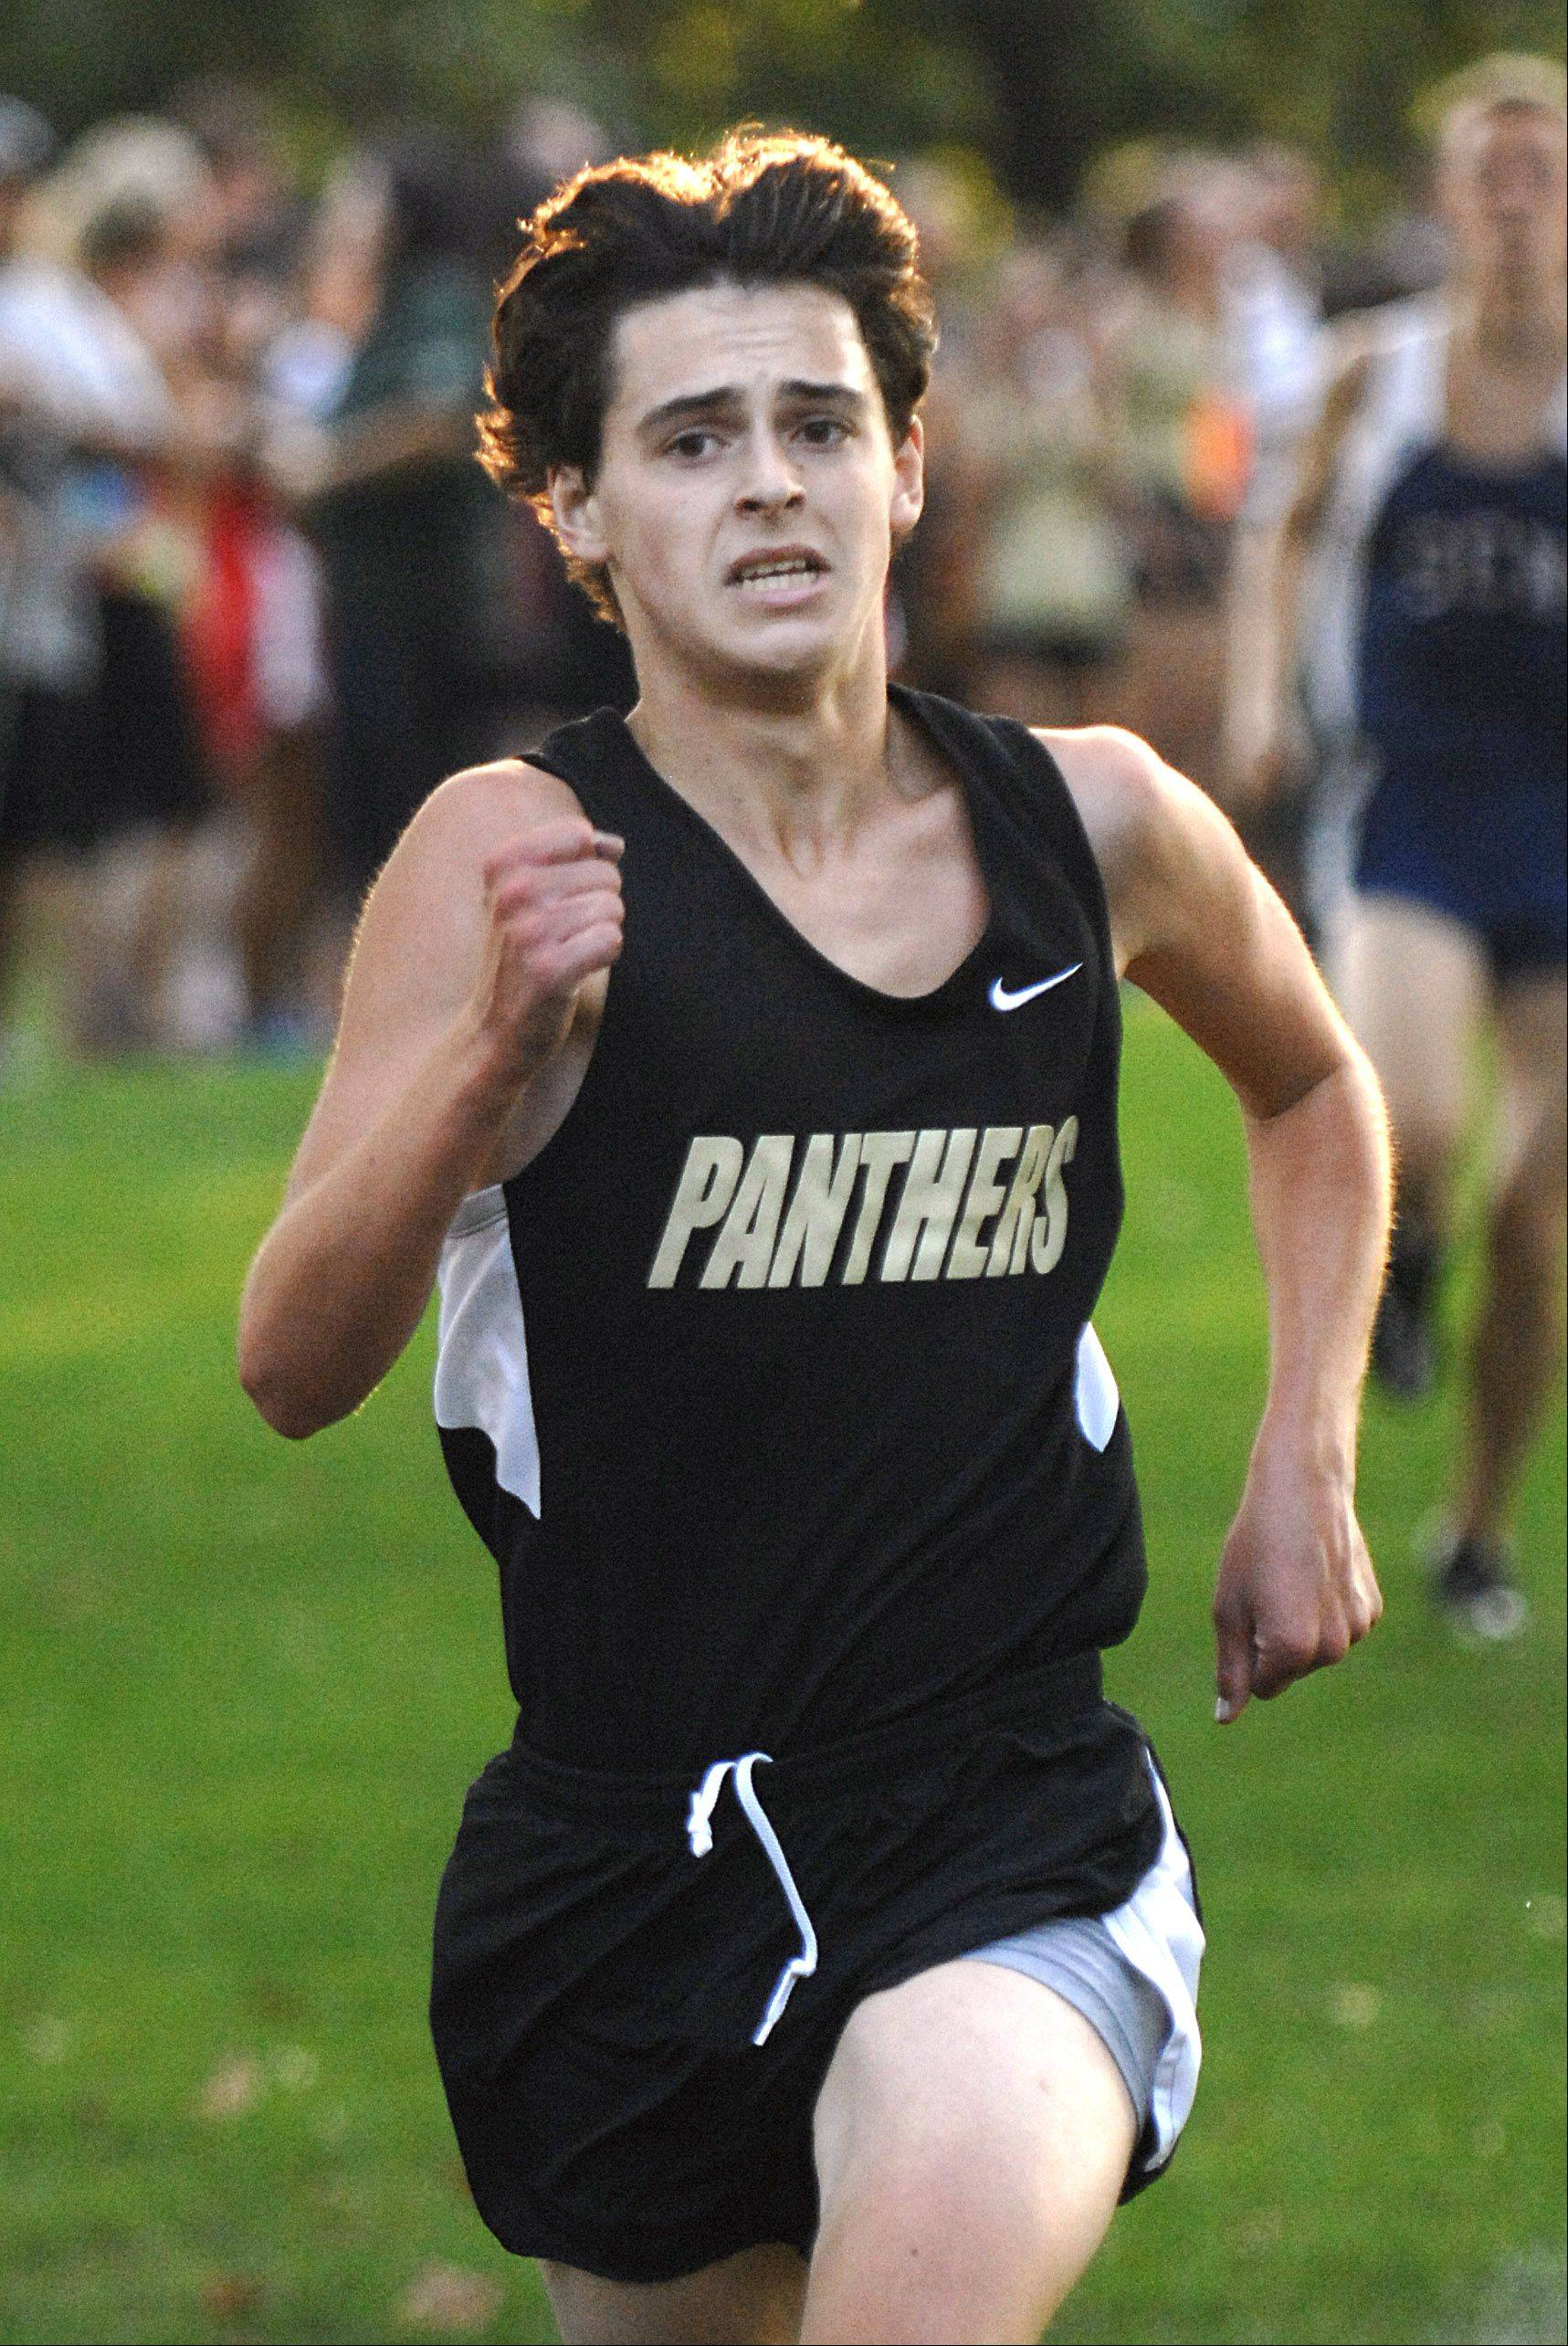 Glenbard North's Tyler Dixon finishes first for his team in the Elgin City Classic at Lords Park on Thursday, August 28.